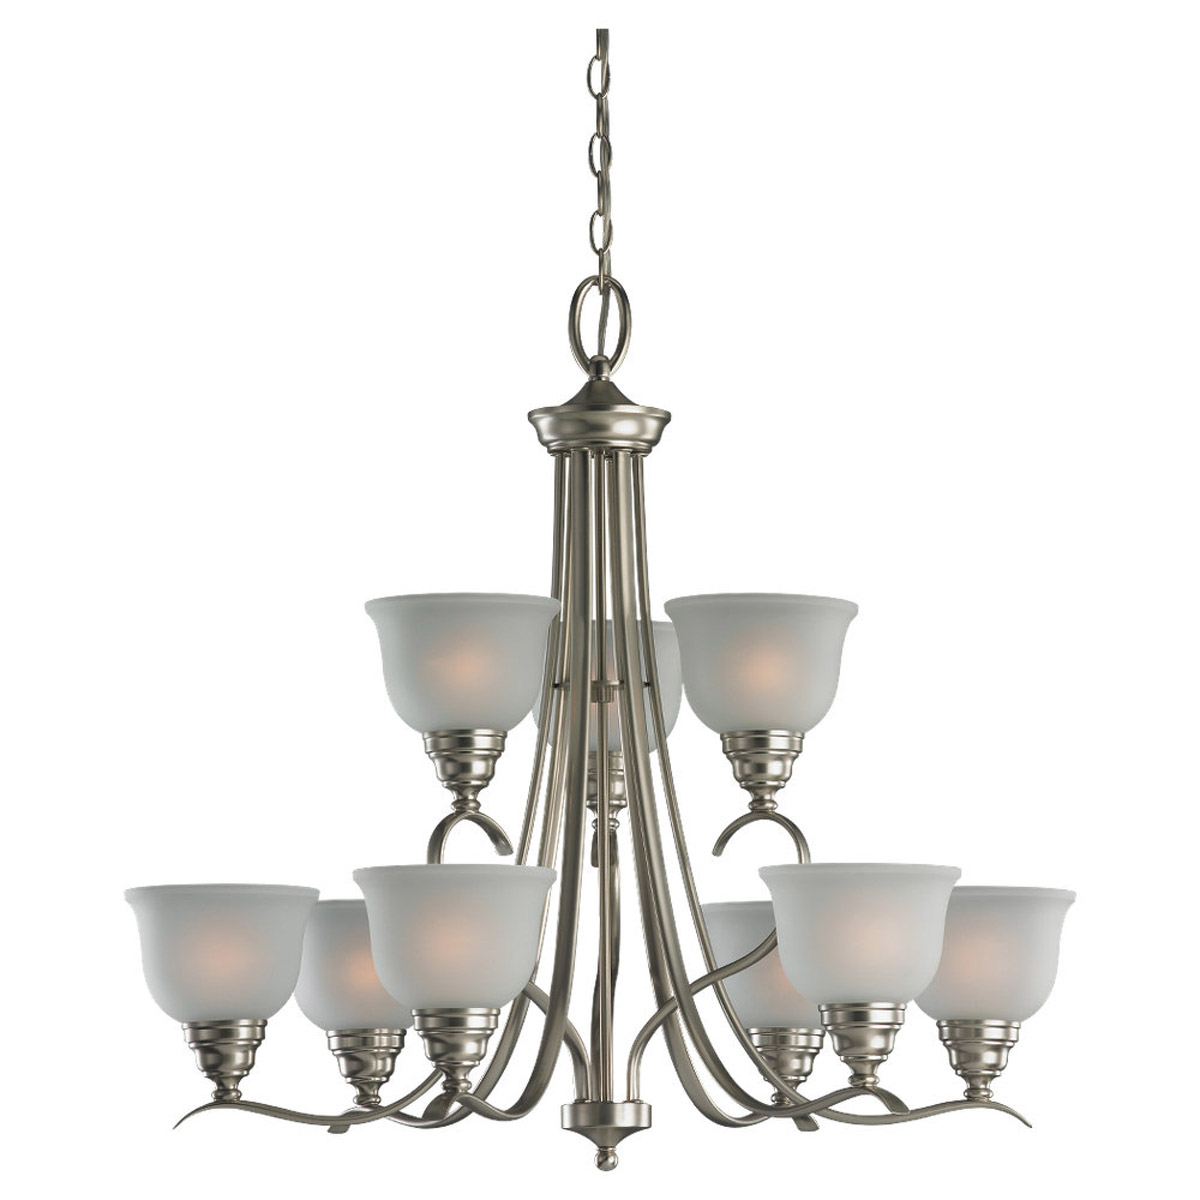 Sea Gull Lighting Wheaton 9 Light Chandelier in Brushed Nickel 31627BLE-962 photo